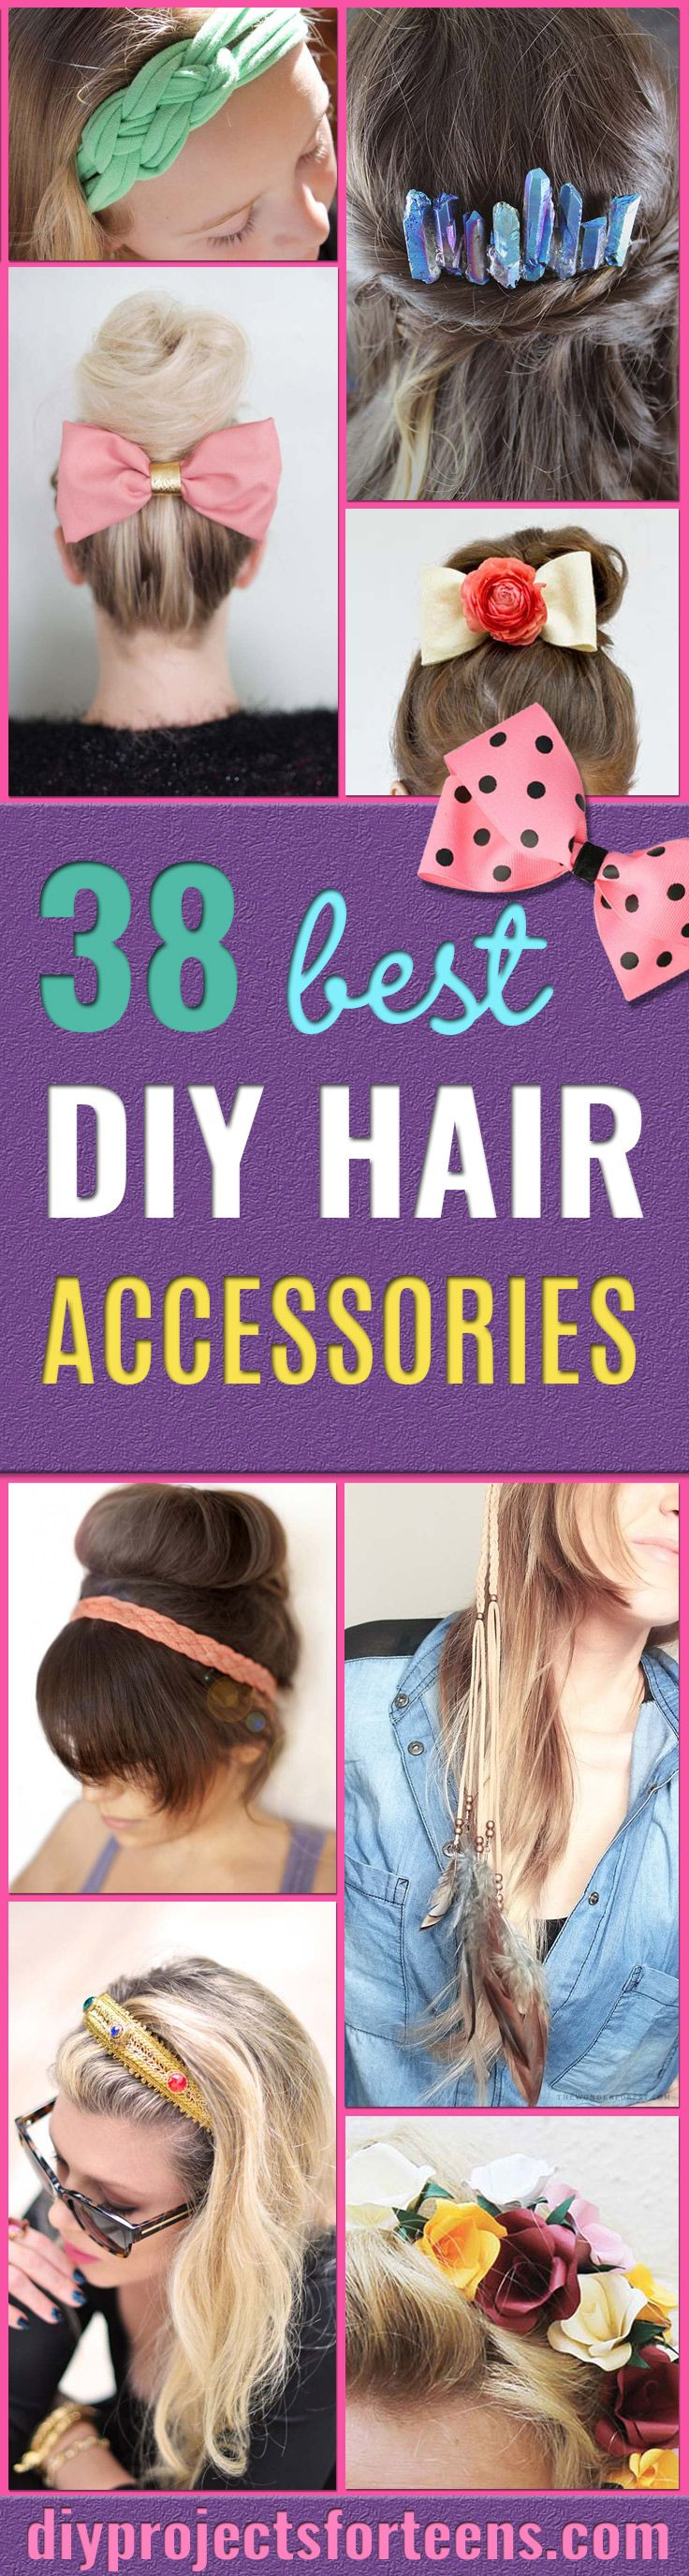 Ha hair accessories for sale - 38 Creative Diy Hair Accessories Create Pretty Hairstyles For Women Teens And Girls With